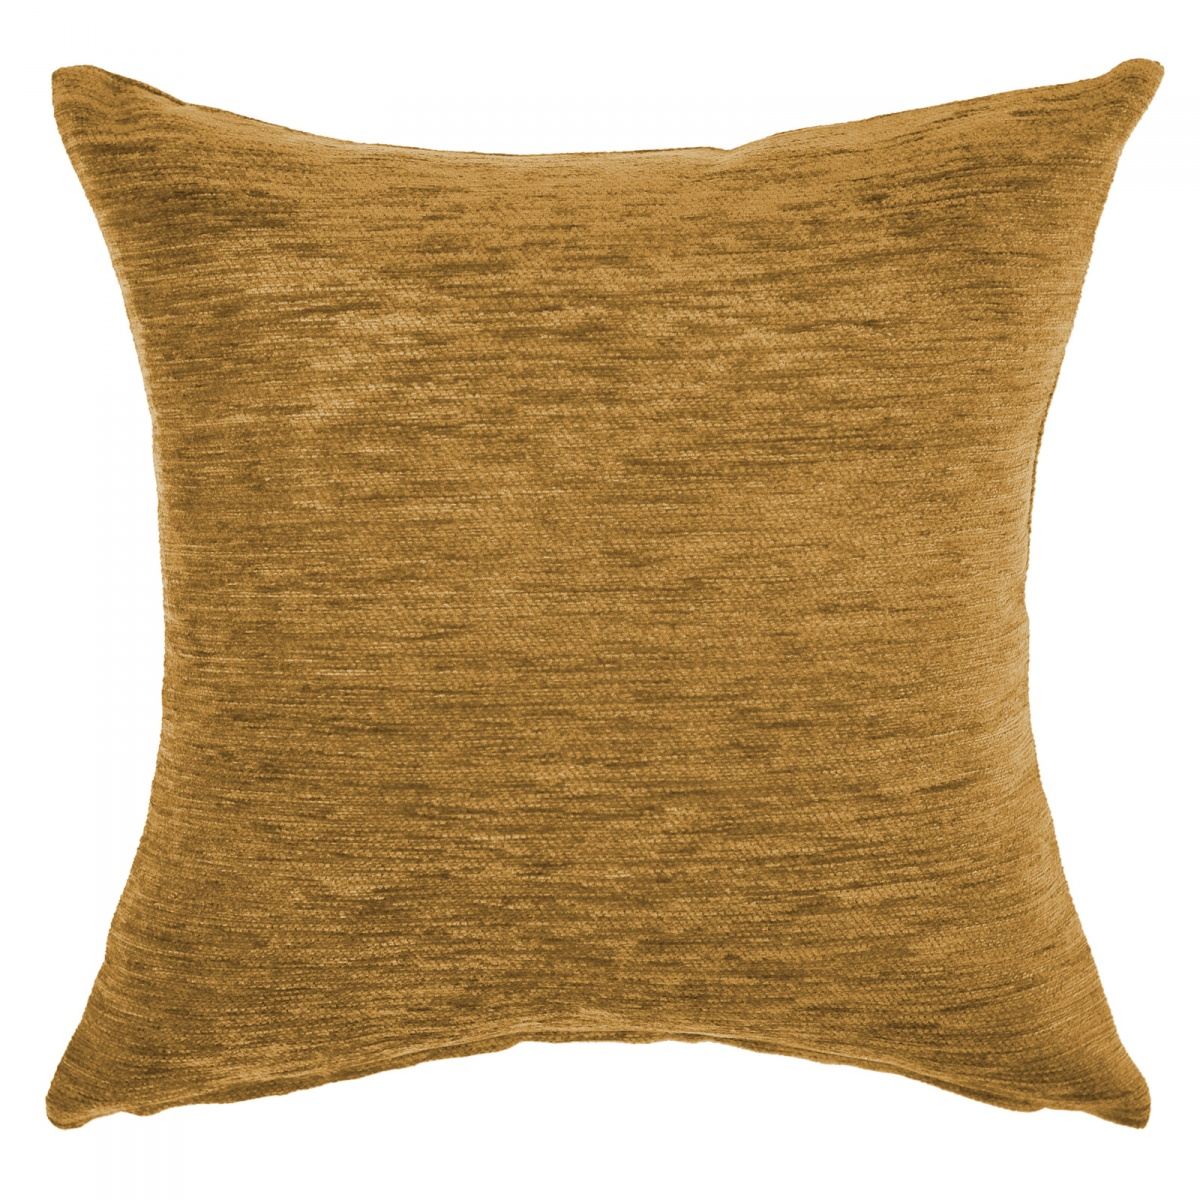 Vitani Gold Cushion - 45x45cm